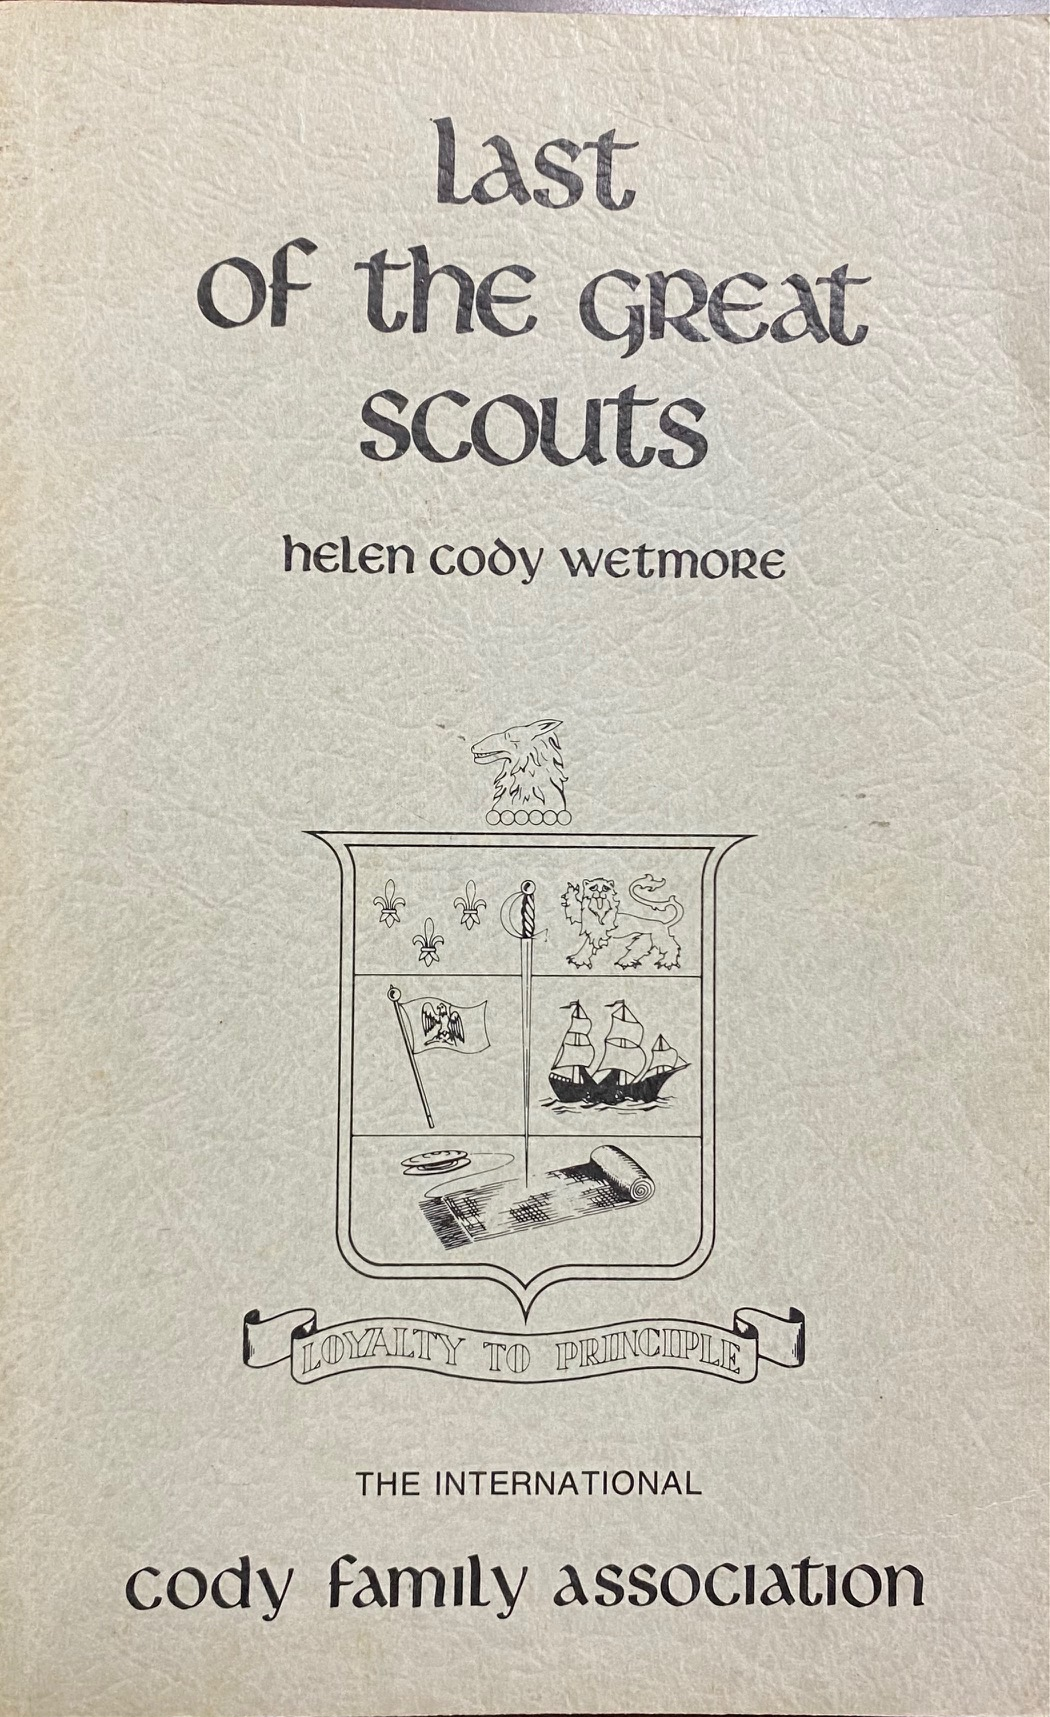 Image for Last of the Great Scouts: The Life Story of Col. William F. Cody [Buffalo Bill] as told by his sister, Helen Cody Wetmore